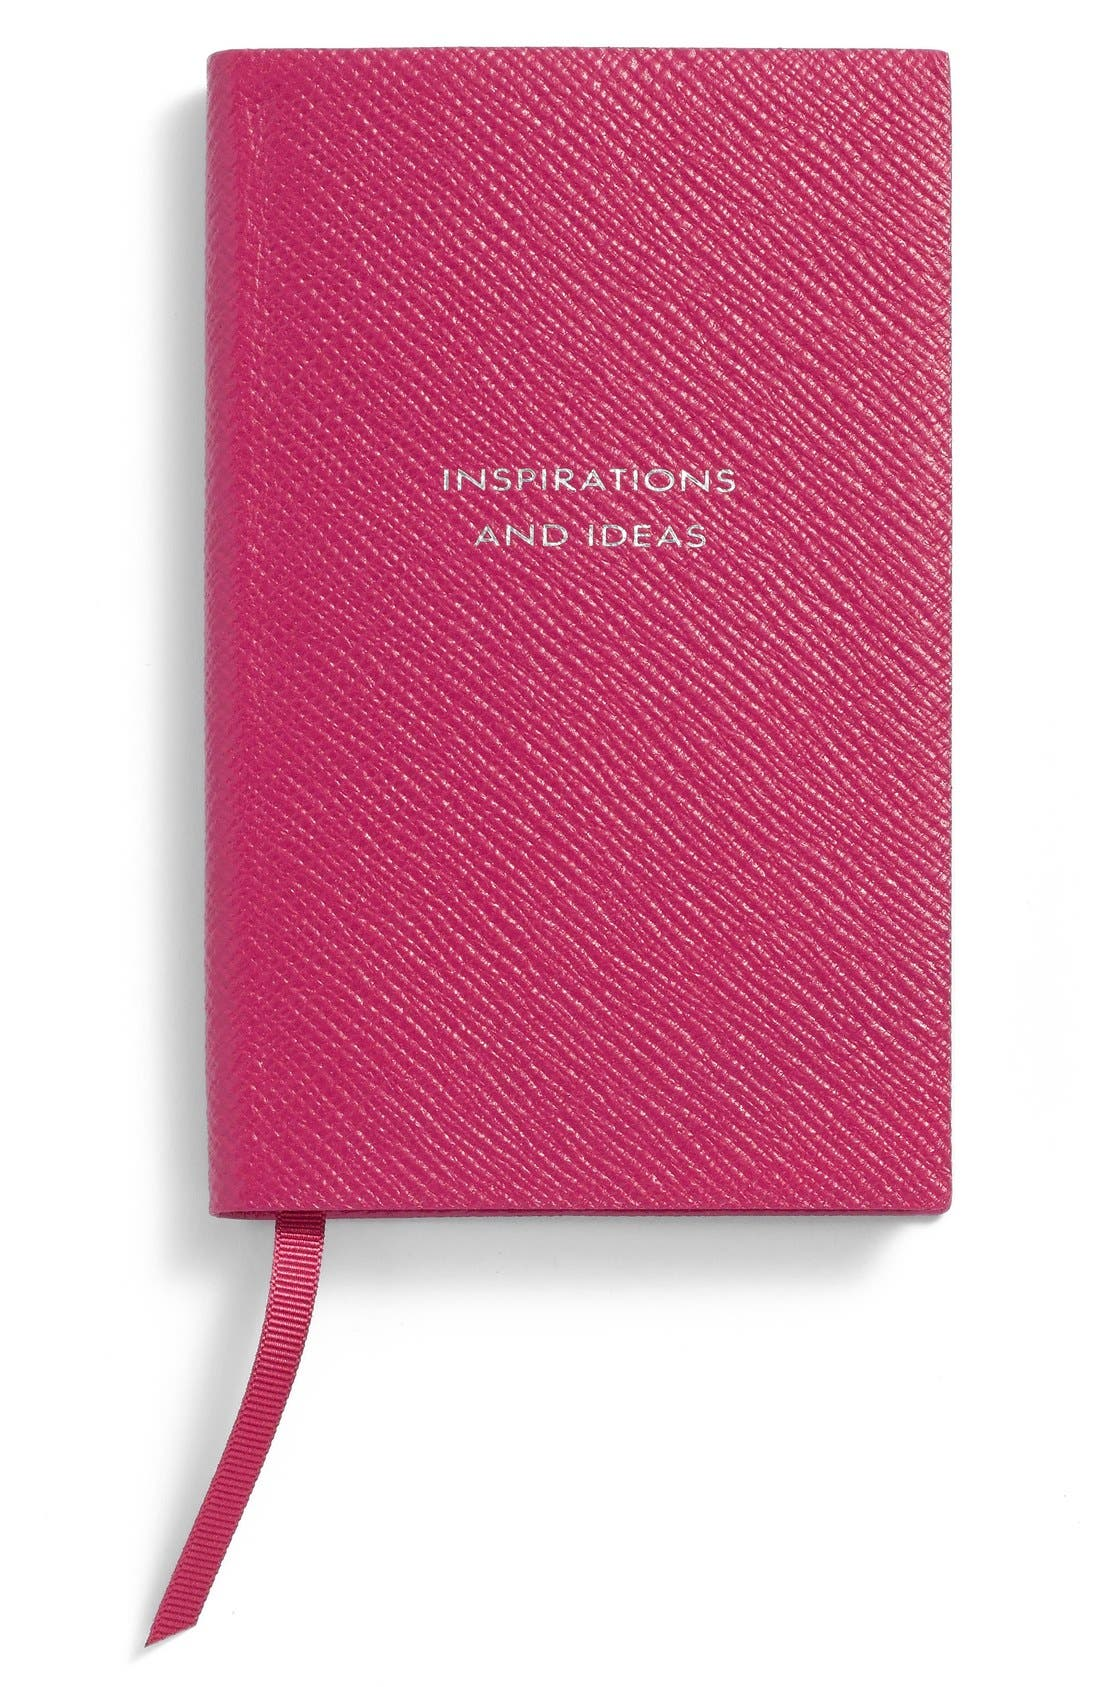 Alternate Image 1 Selected - Smythson 'Inspirations and Ideas - Panama' Pocket Notebook